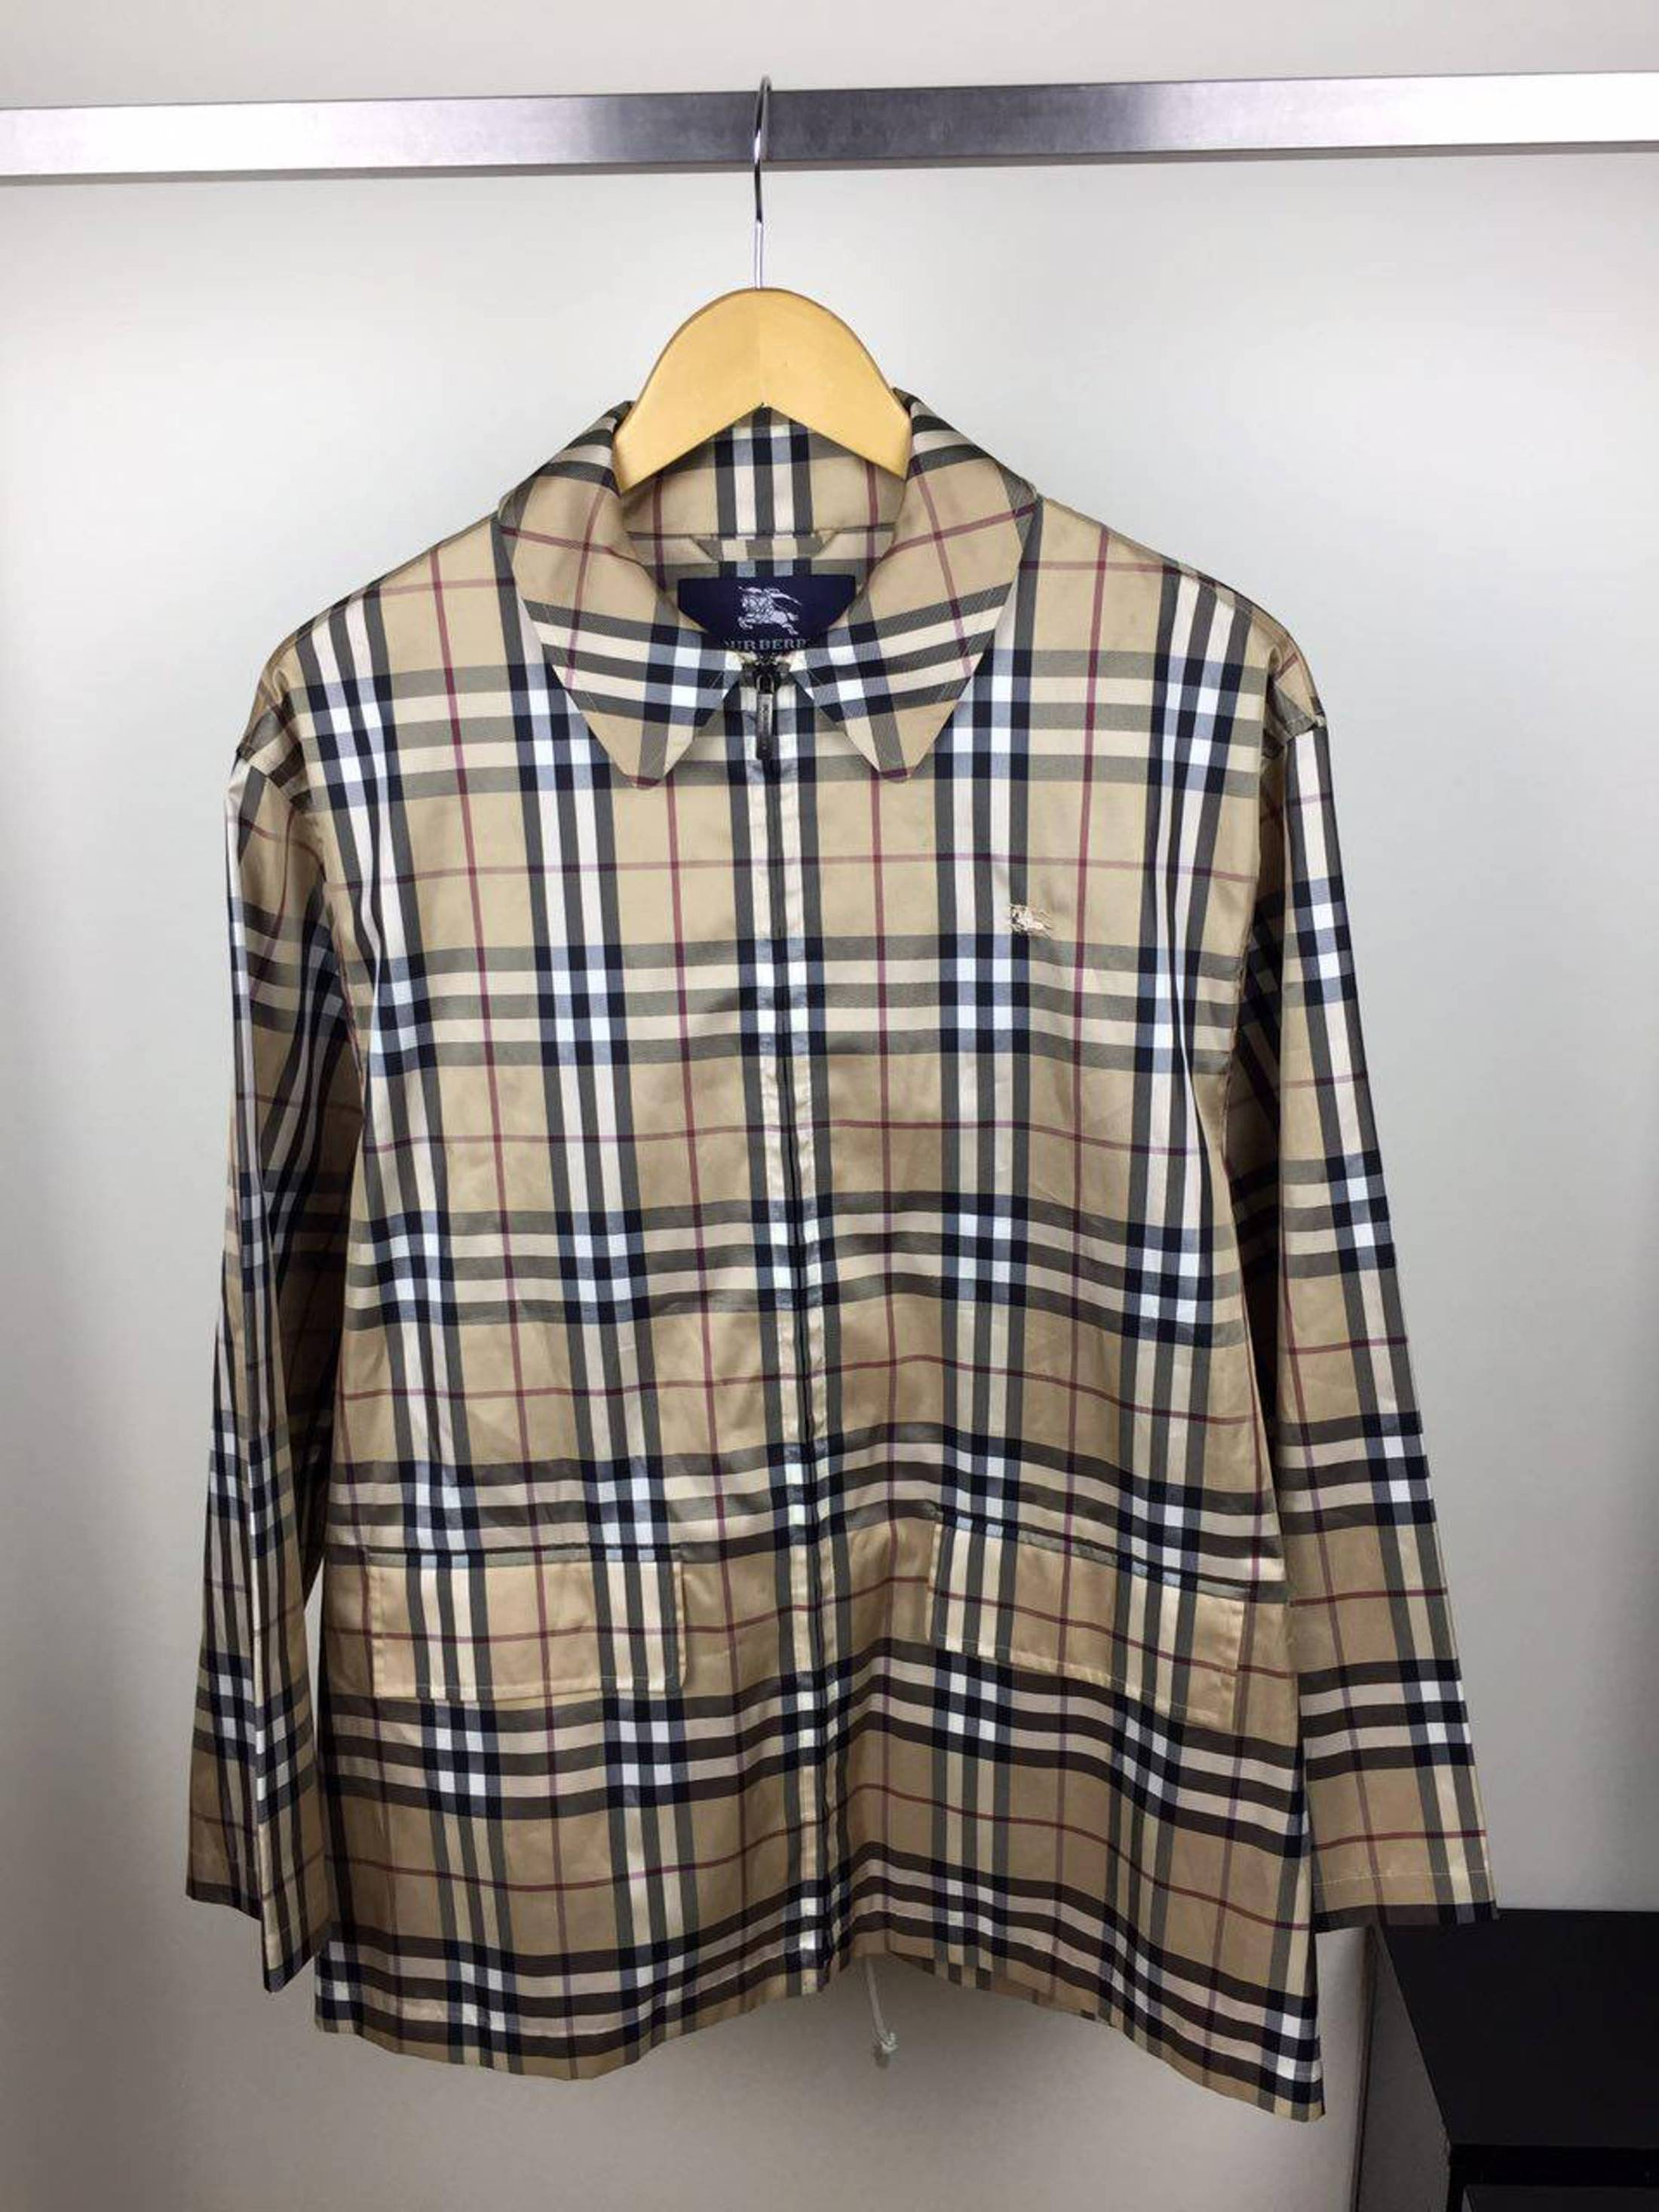 6c9bfcfe4 Burberry ×. BURBERRY TRANSOFRMER PACKABLE BLOUSON NOVA CHECK JACKET COAT  RAINCOAT not gucci ...